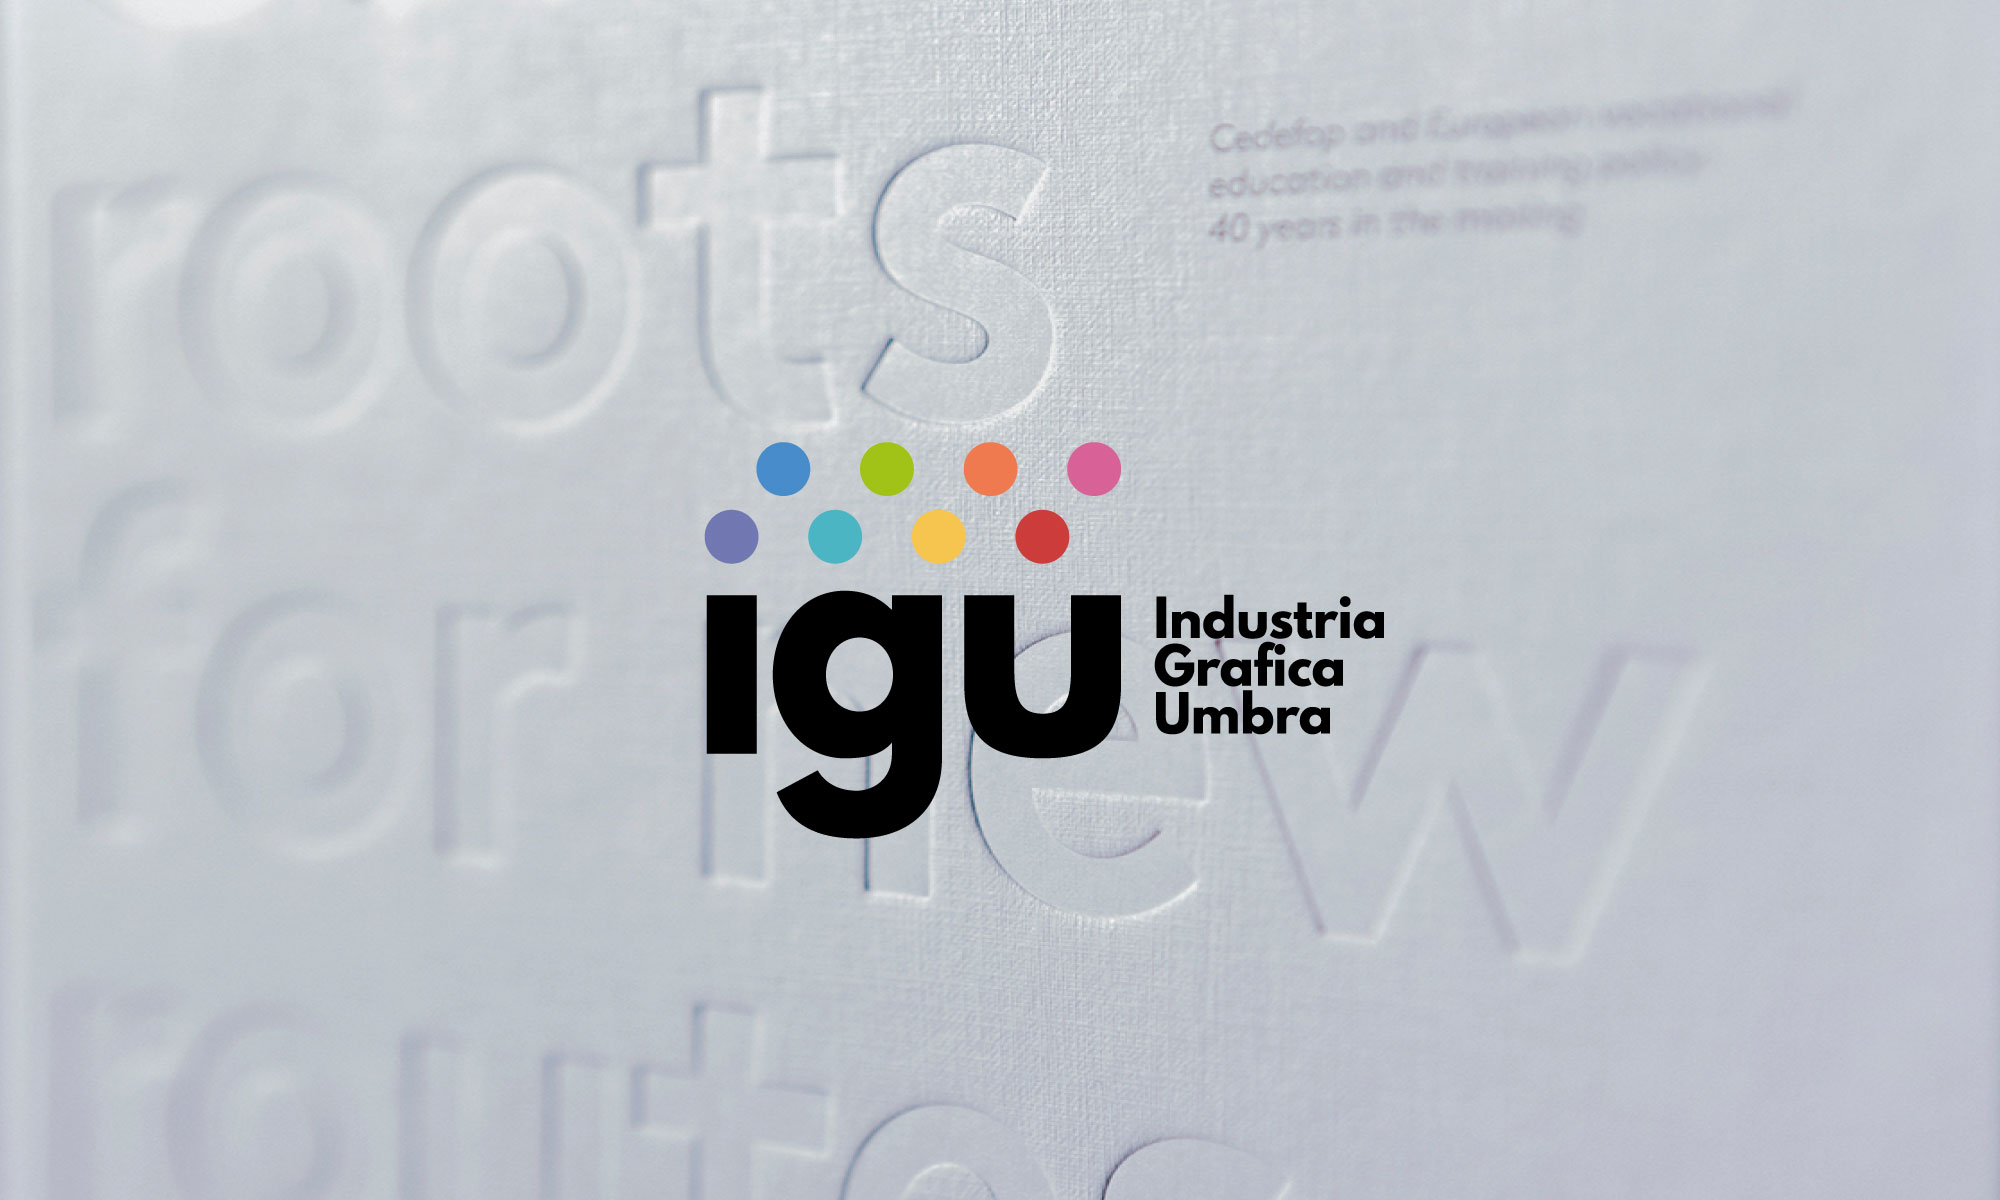 Industria Grafica Umbra